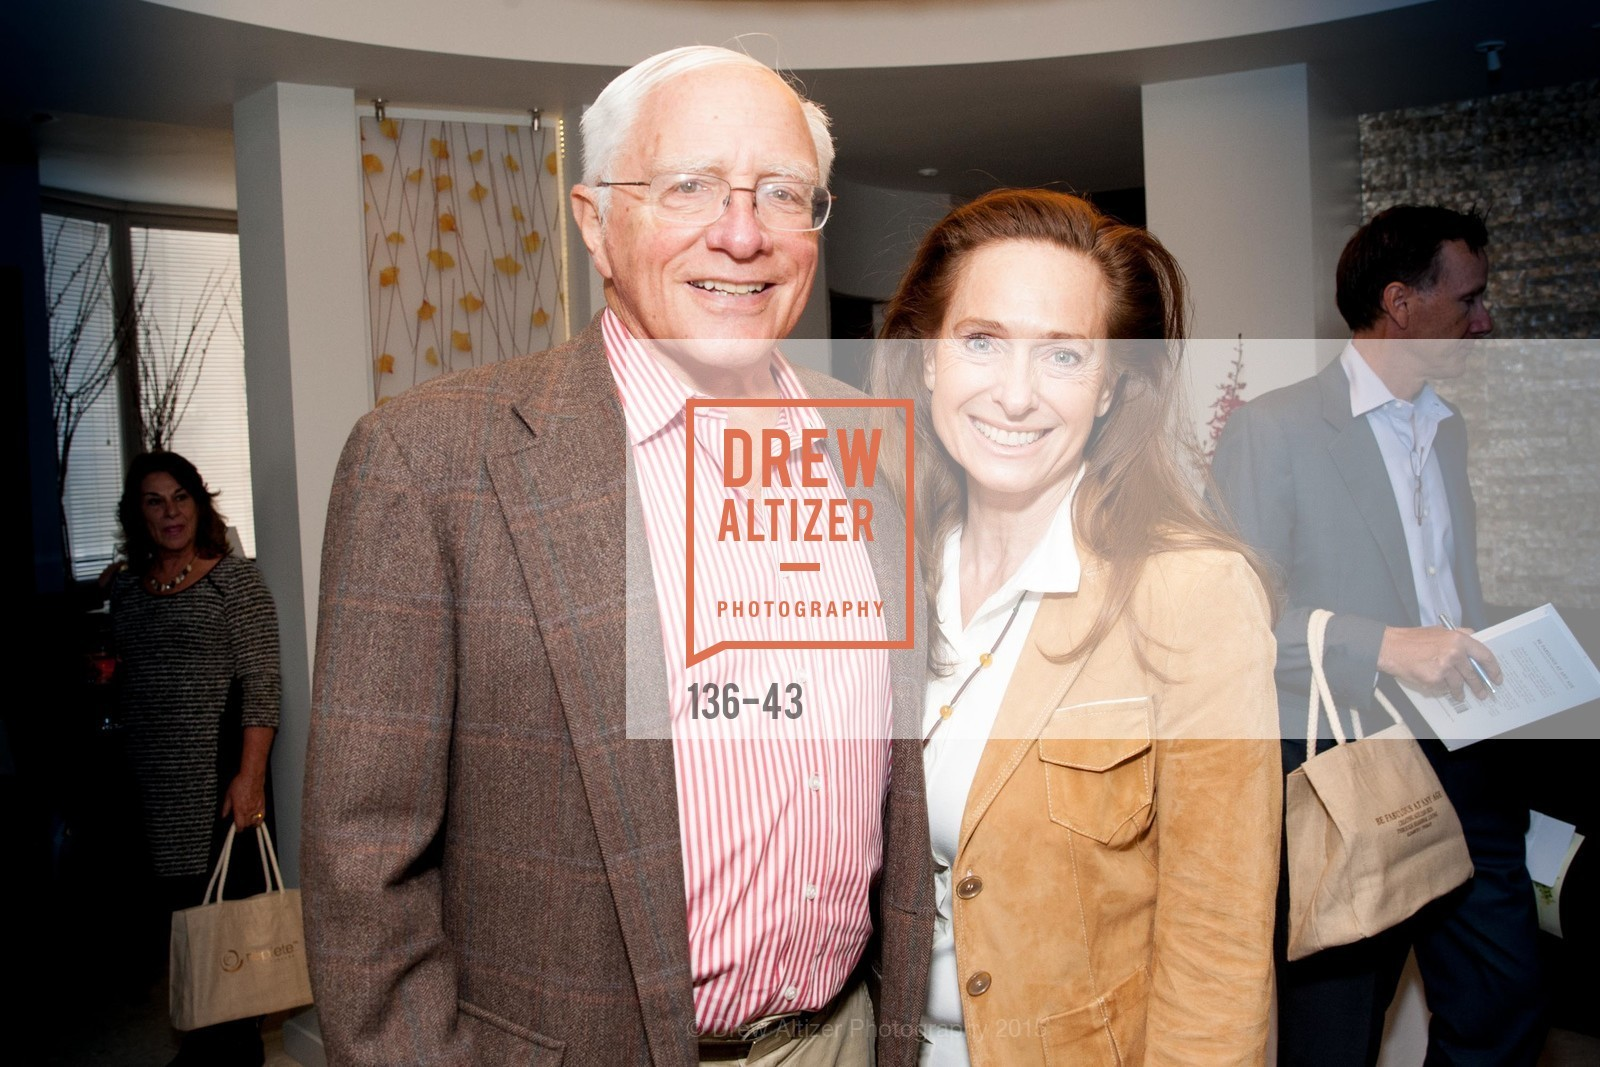 John Newmeyer, Elisabeth Thieriot, EPI CENTER MedSpa Anniversary and Launch of REPLETE, Epi Center MedSpa, April 21st, 2015,Drew Altizer, Drew Altizer Photography, full-service agency, private events, San Francisco photographer, photographer california